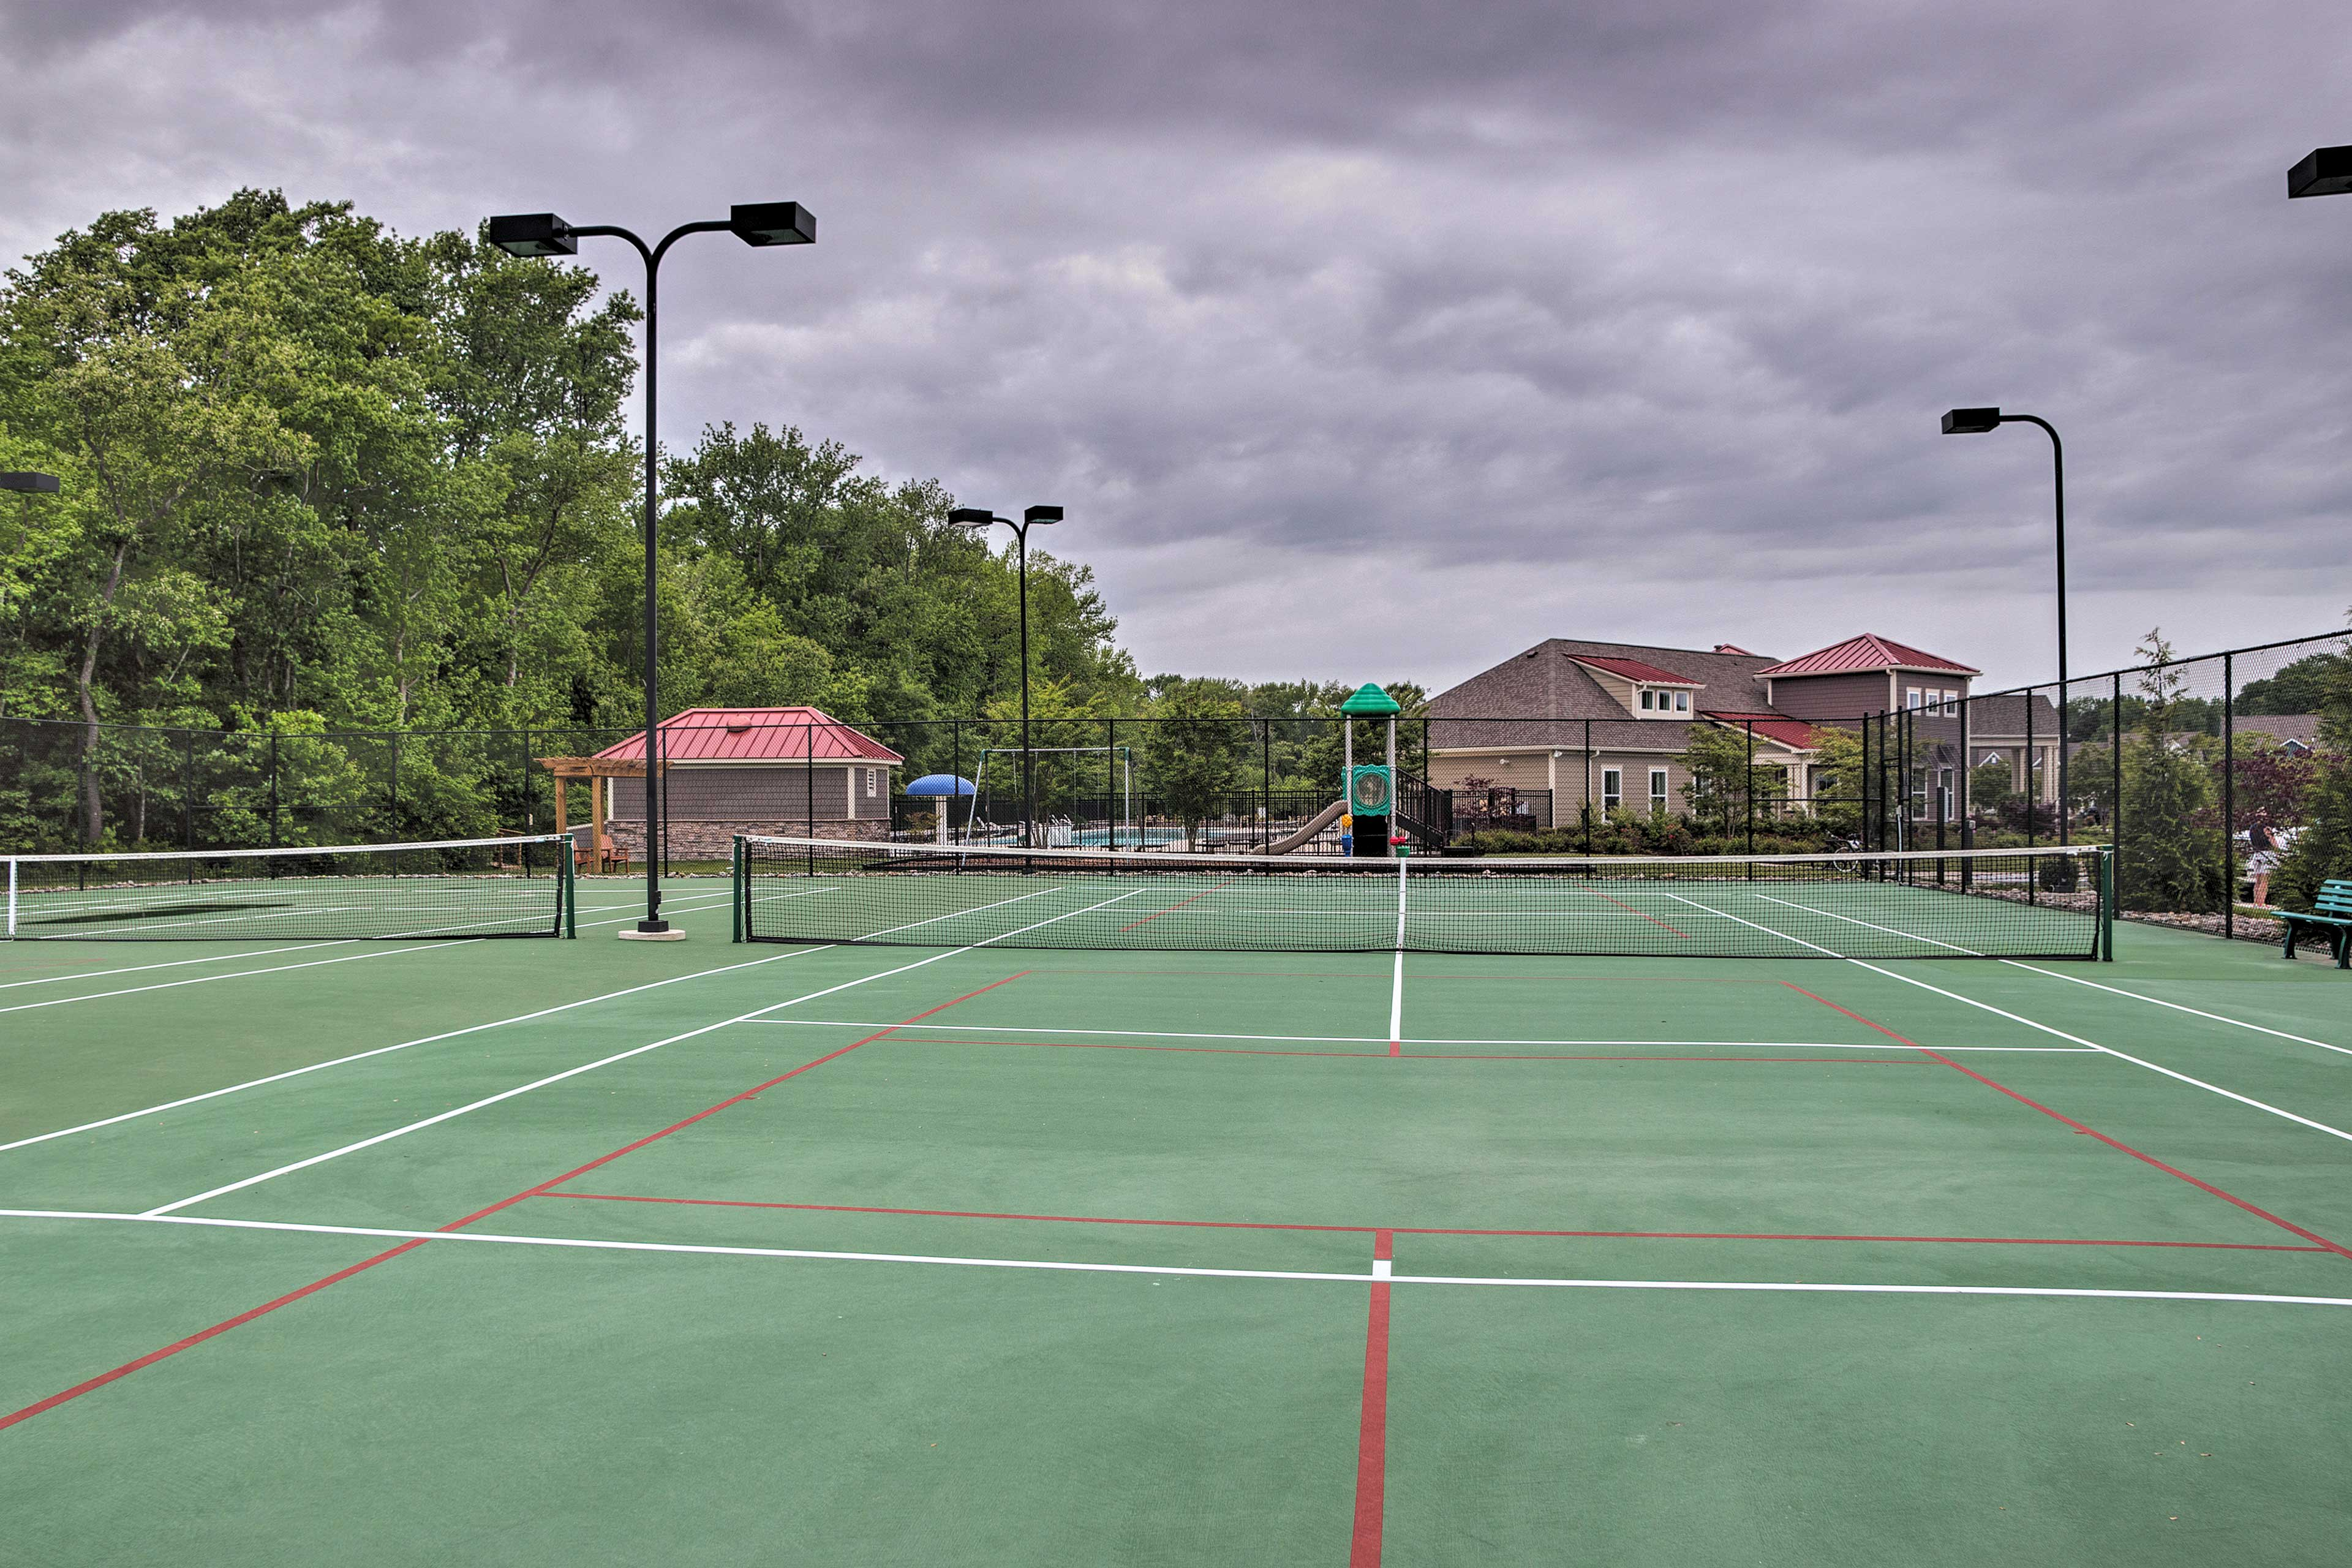 Bring your rackets and head to the courts.